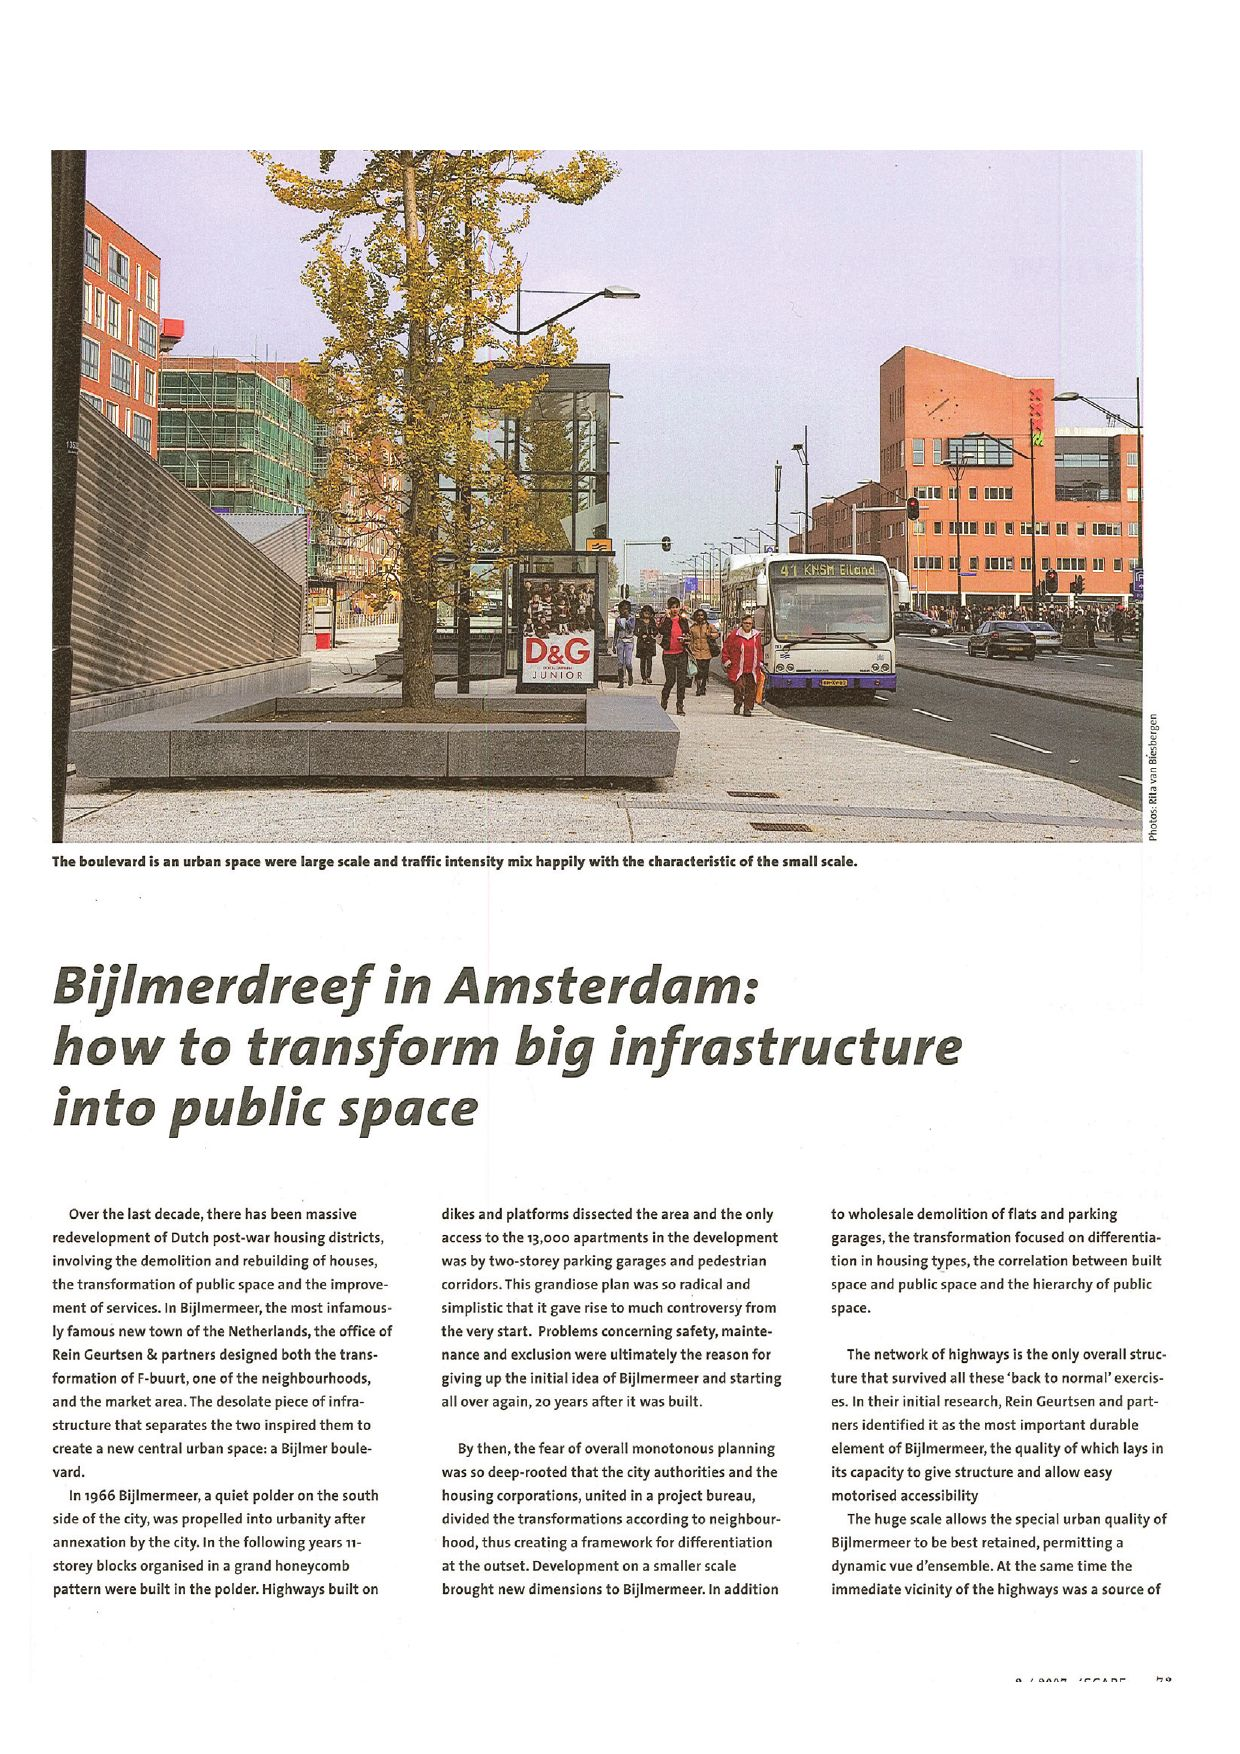 Bureau Eiland Bijlmerdreef In Amsterdam How To Transform Big Infrastructure